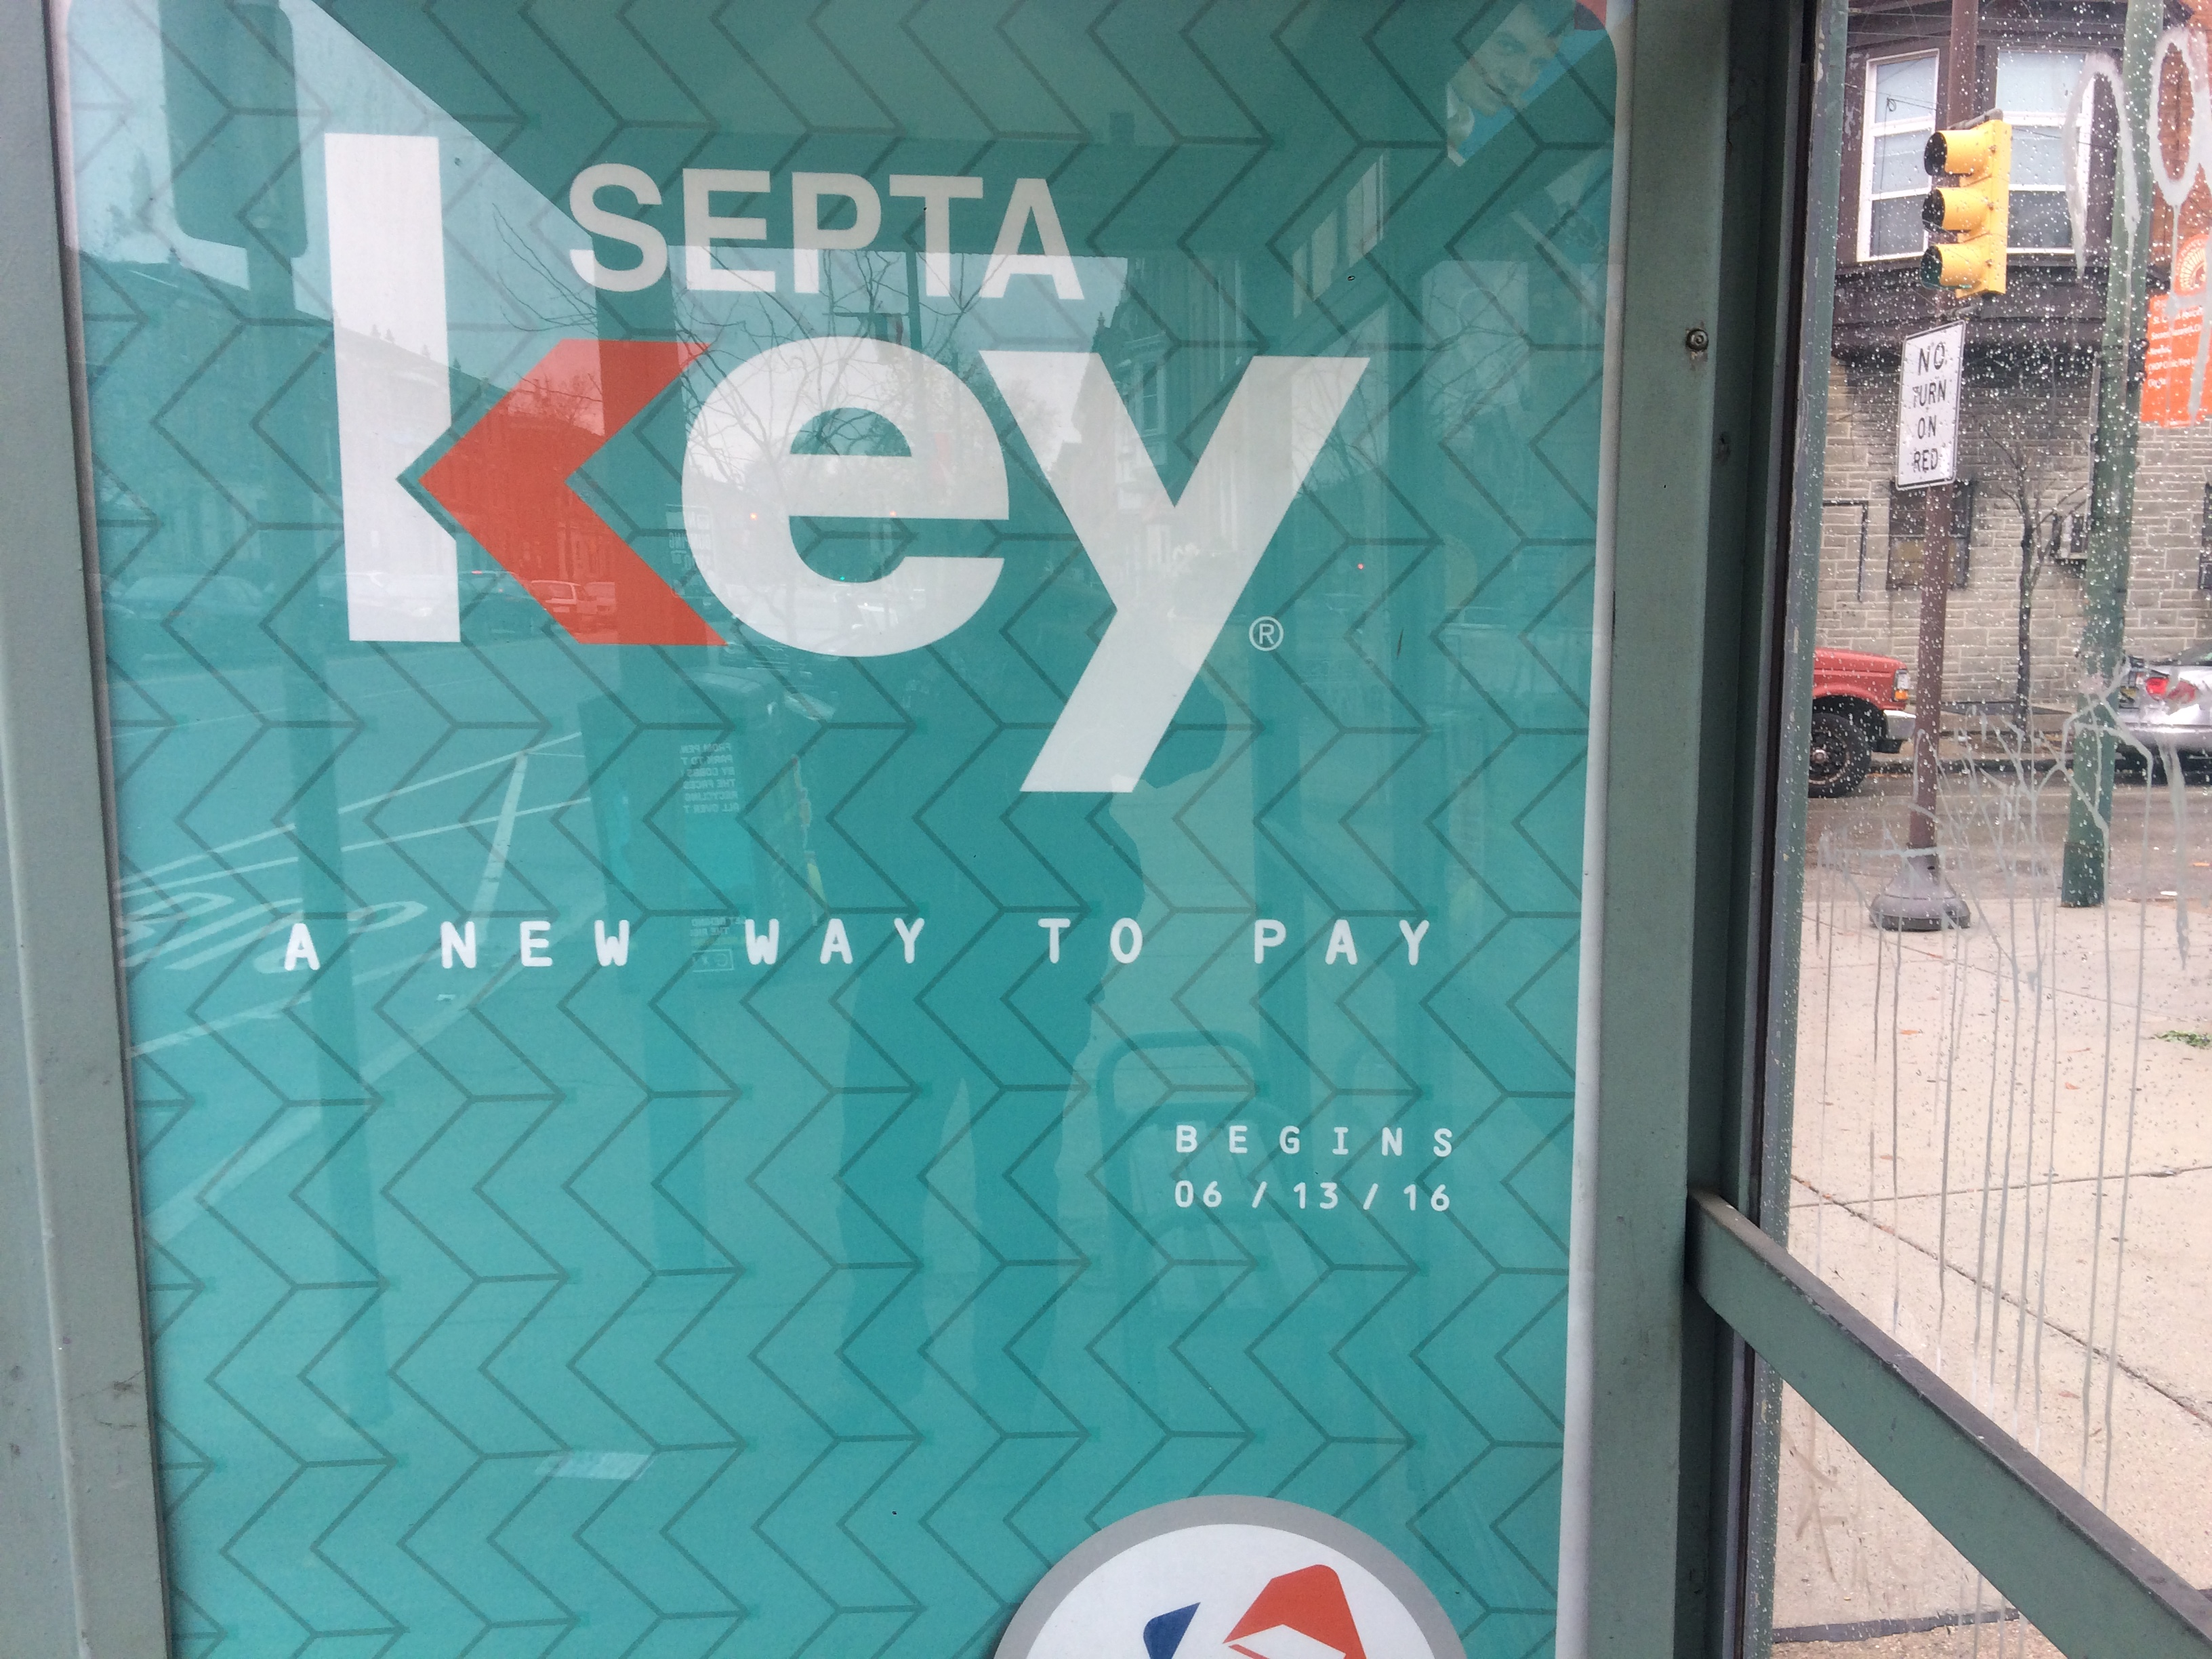 SEPTA Key bus shelter ad suggesting the new way to pay began on June 13th, 2016